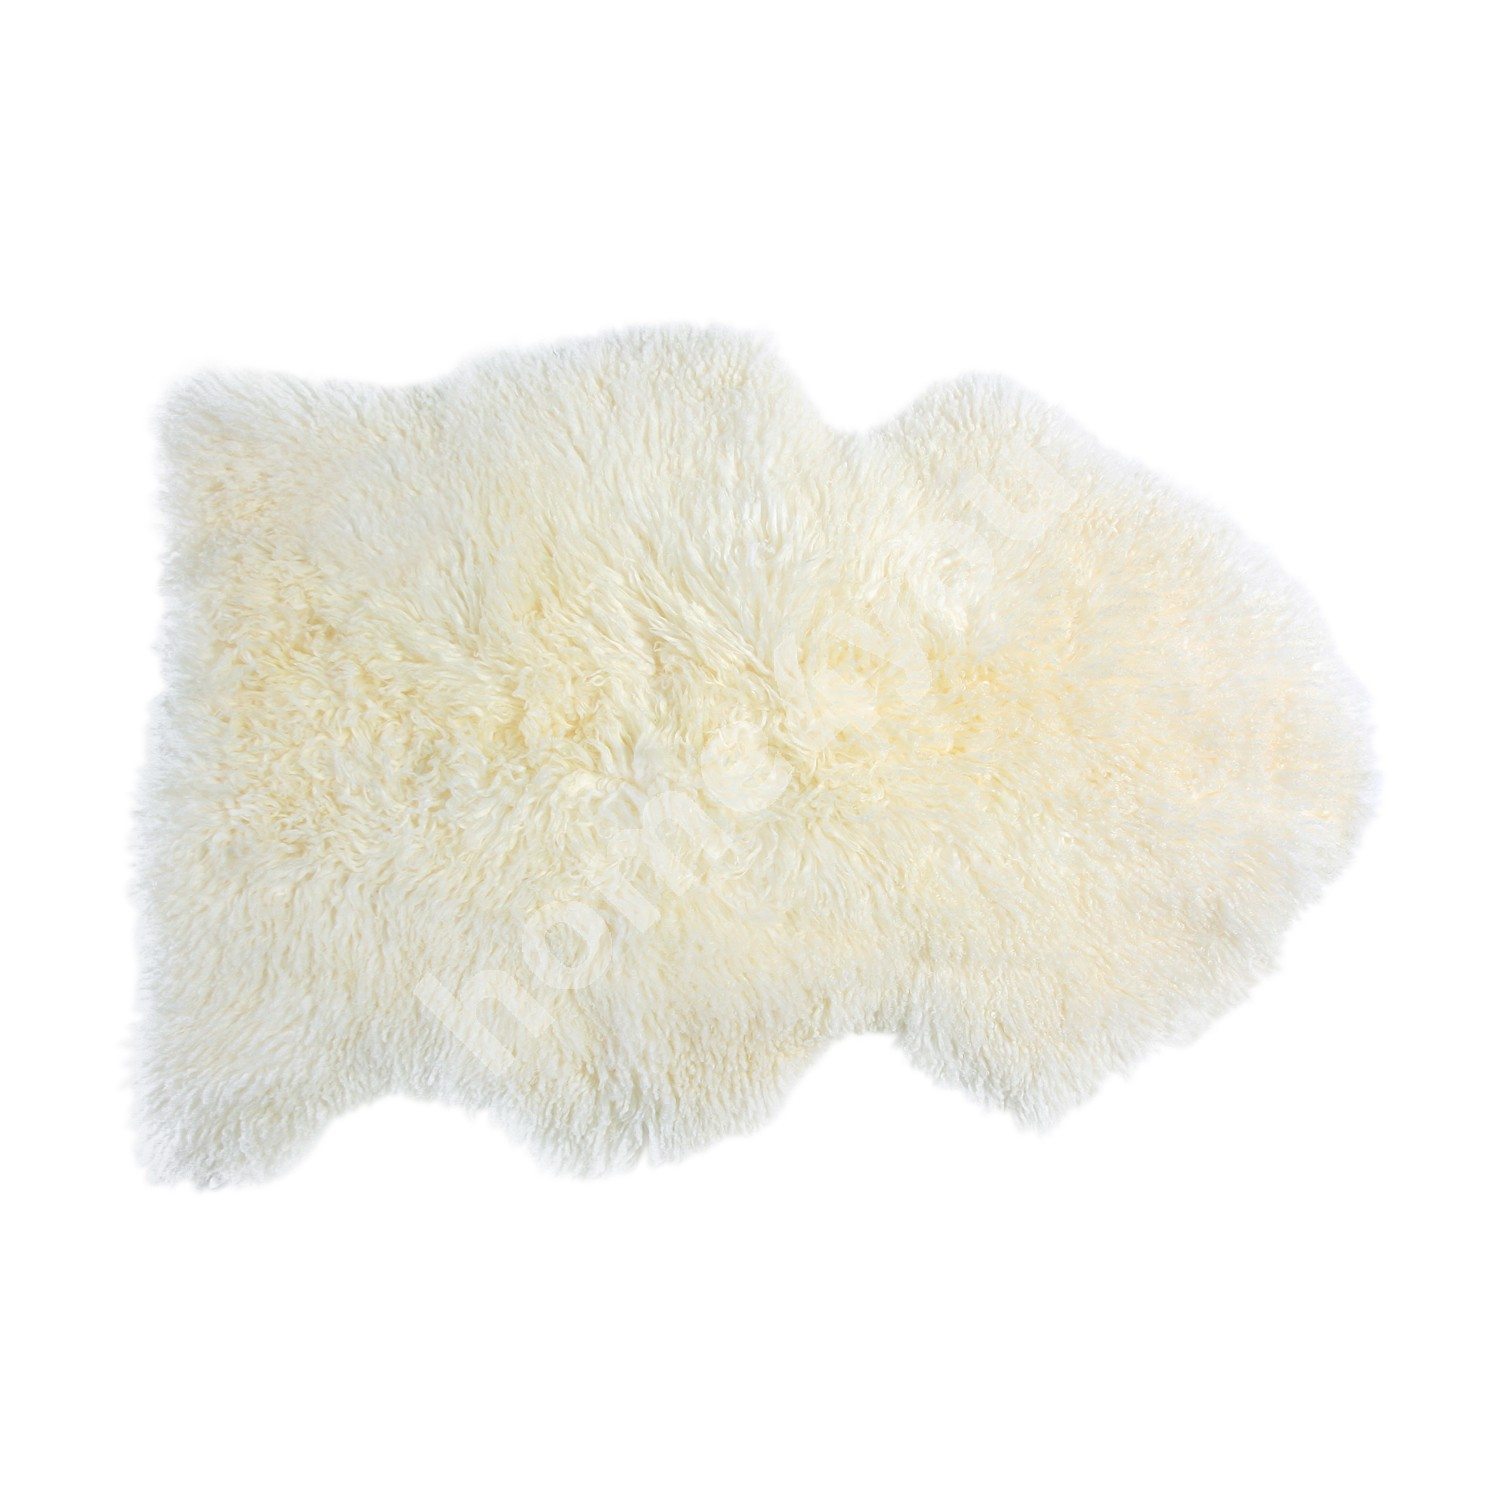 Sheepskin MERINO XL 105-110cm, white